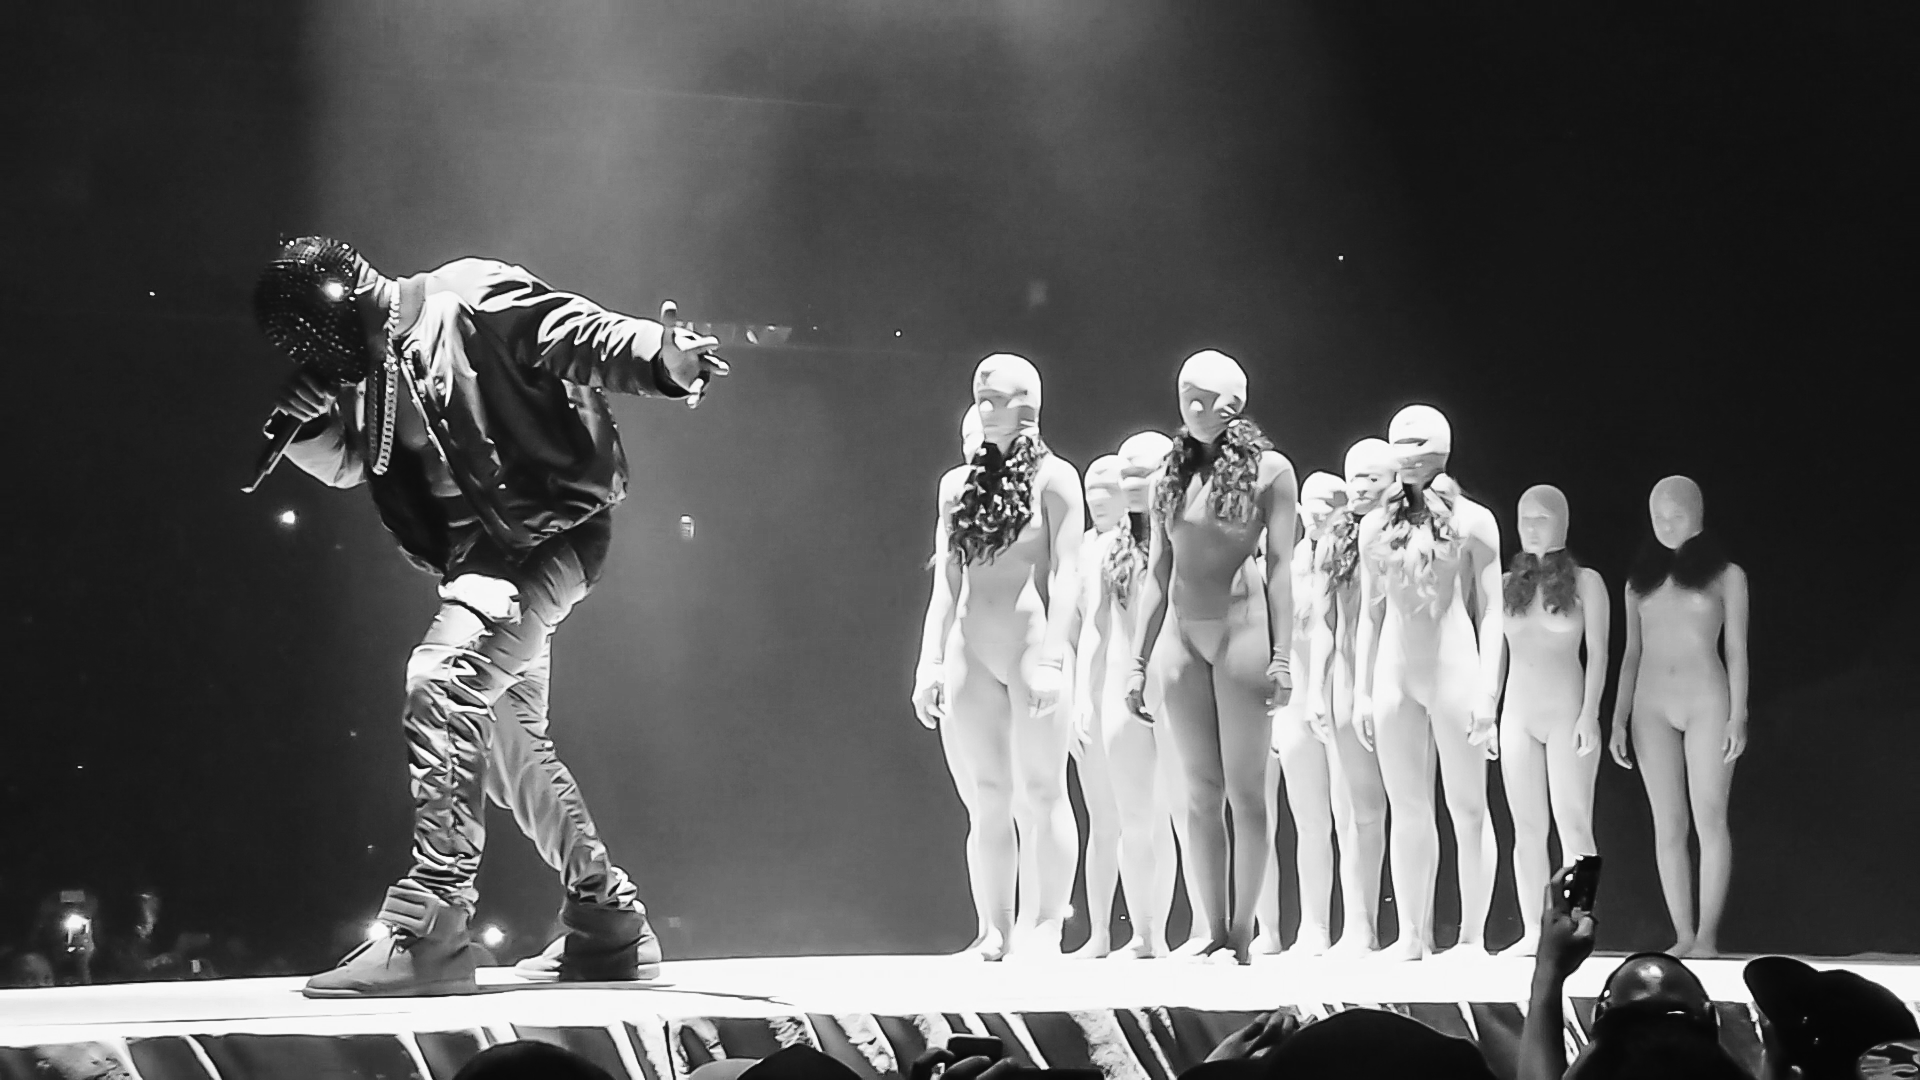 Op-ed: Kanye West, Fraud or Forgiven?